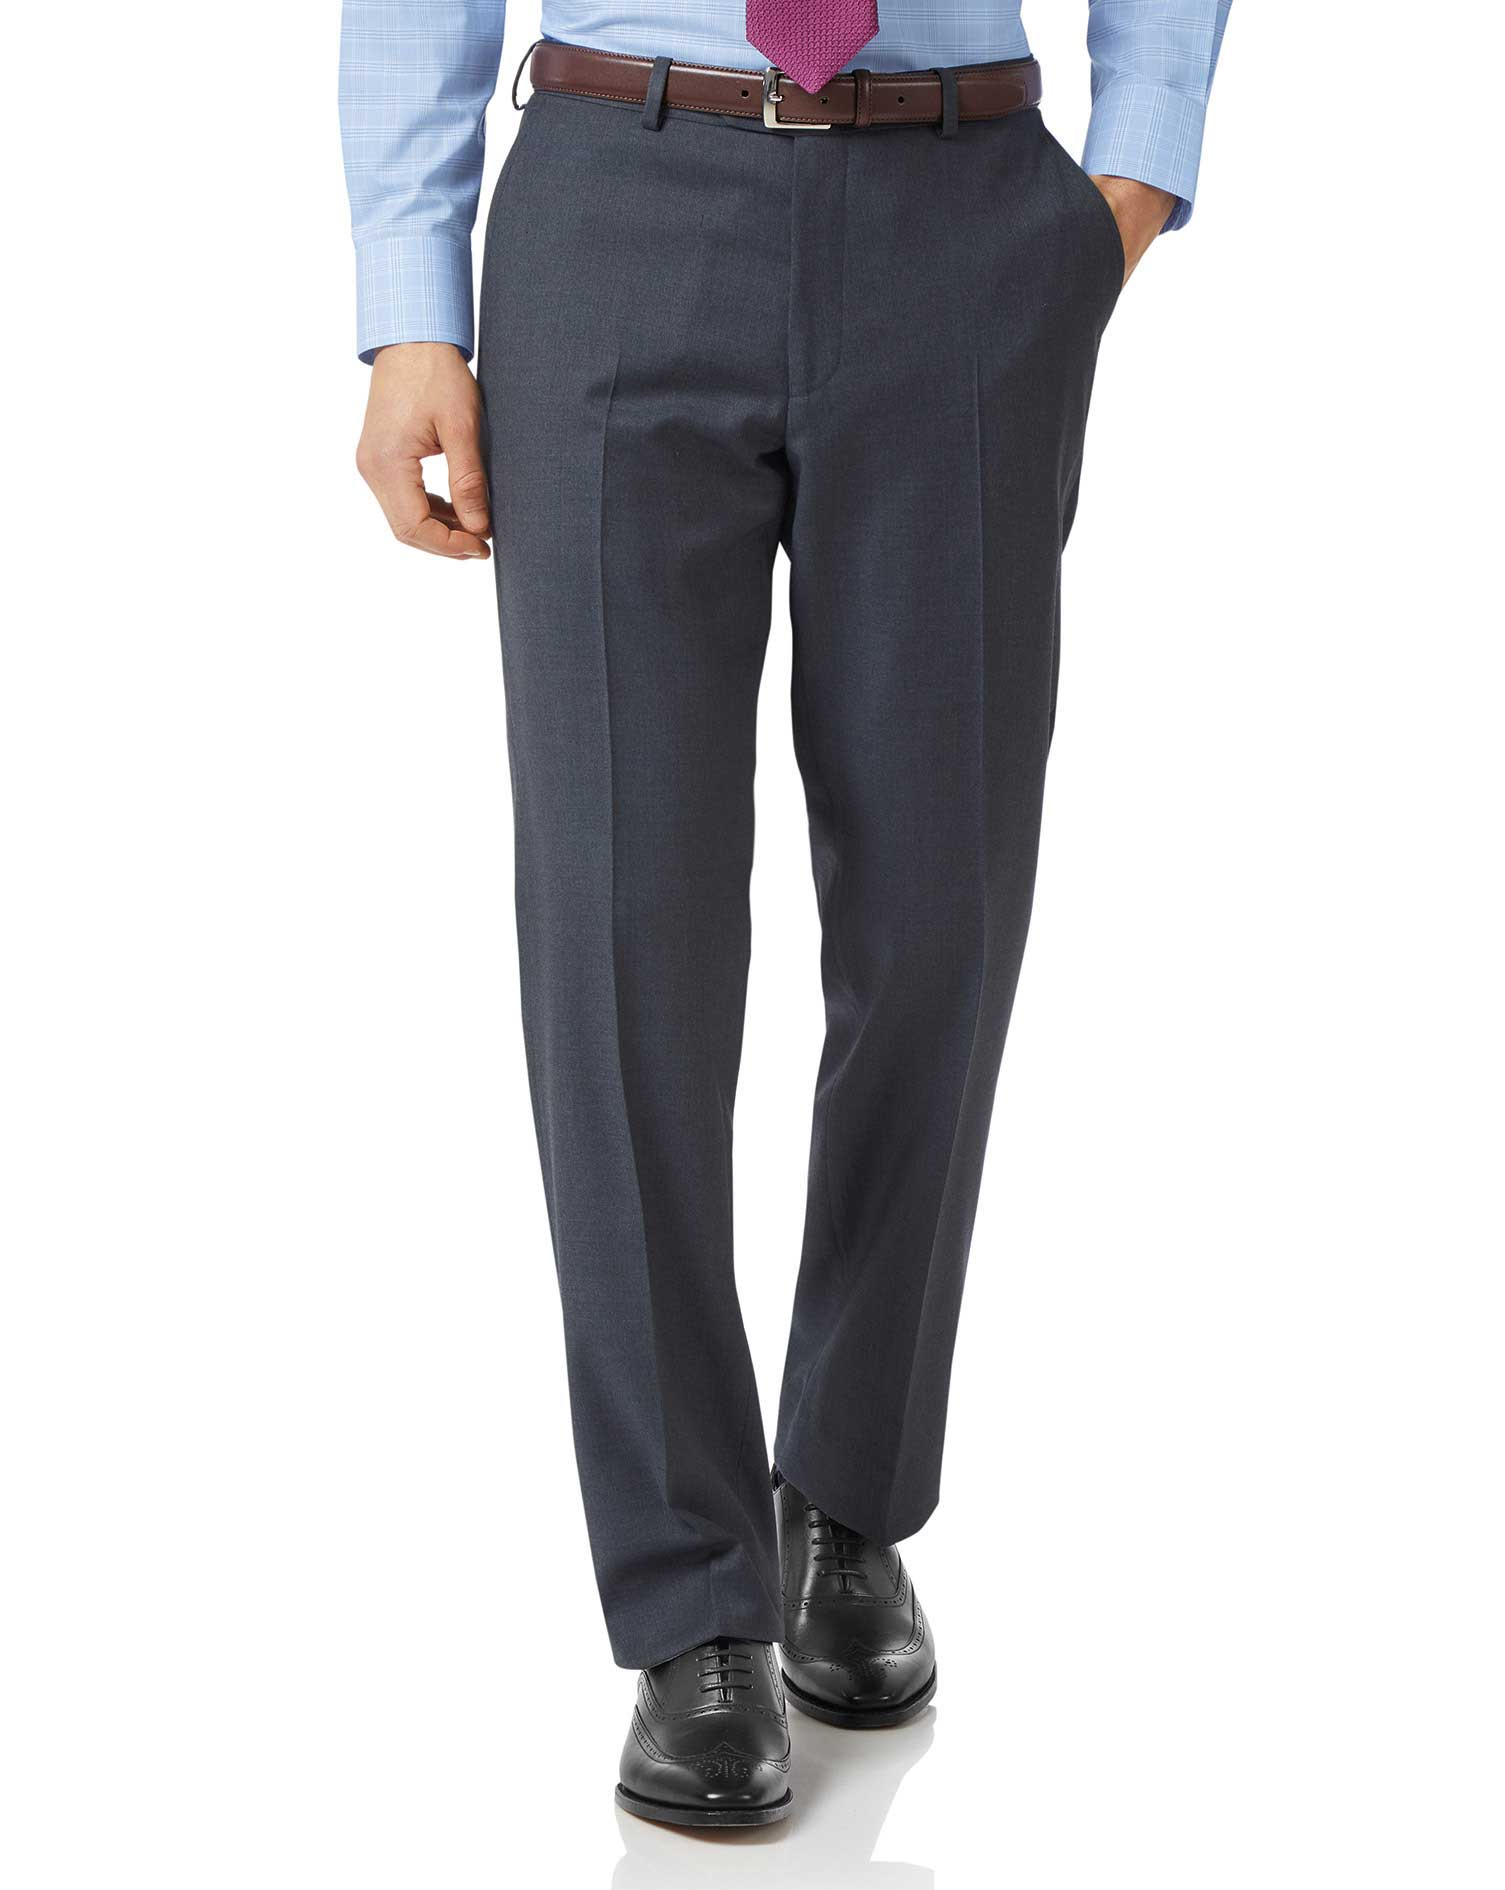 Steel Blue Classic Fit Twill Business Suit Trousers Size W38 L38 by Charles Tyrwhitt